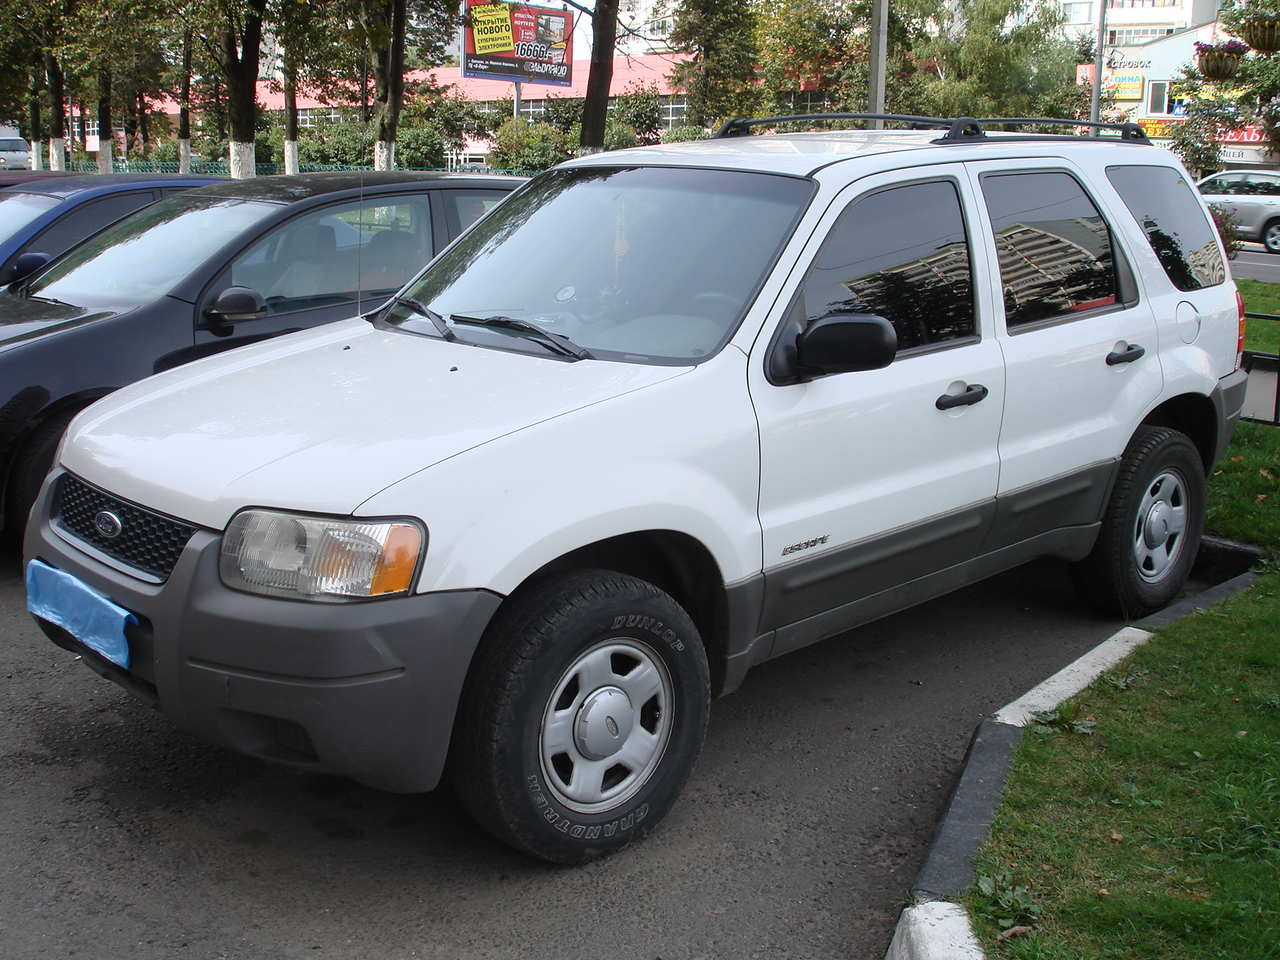 2001 Ford Escape Photos 20 Gasoline Manual For Sale Mercury Grand Marquis Starter Wiring Photo 2 Enlarge 1280x960